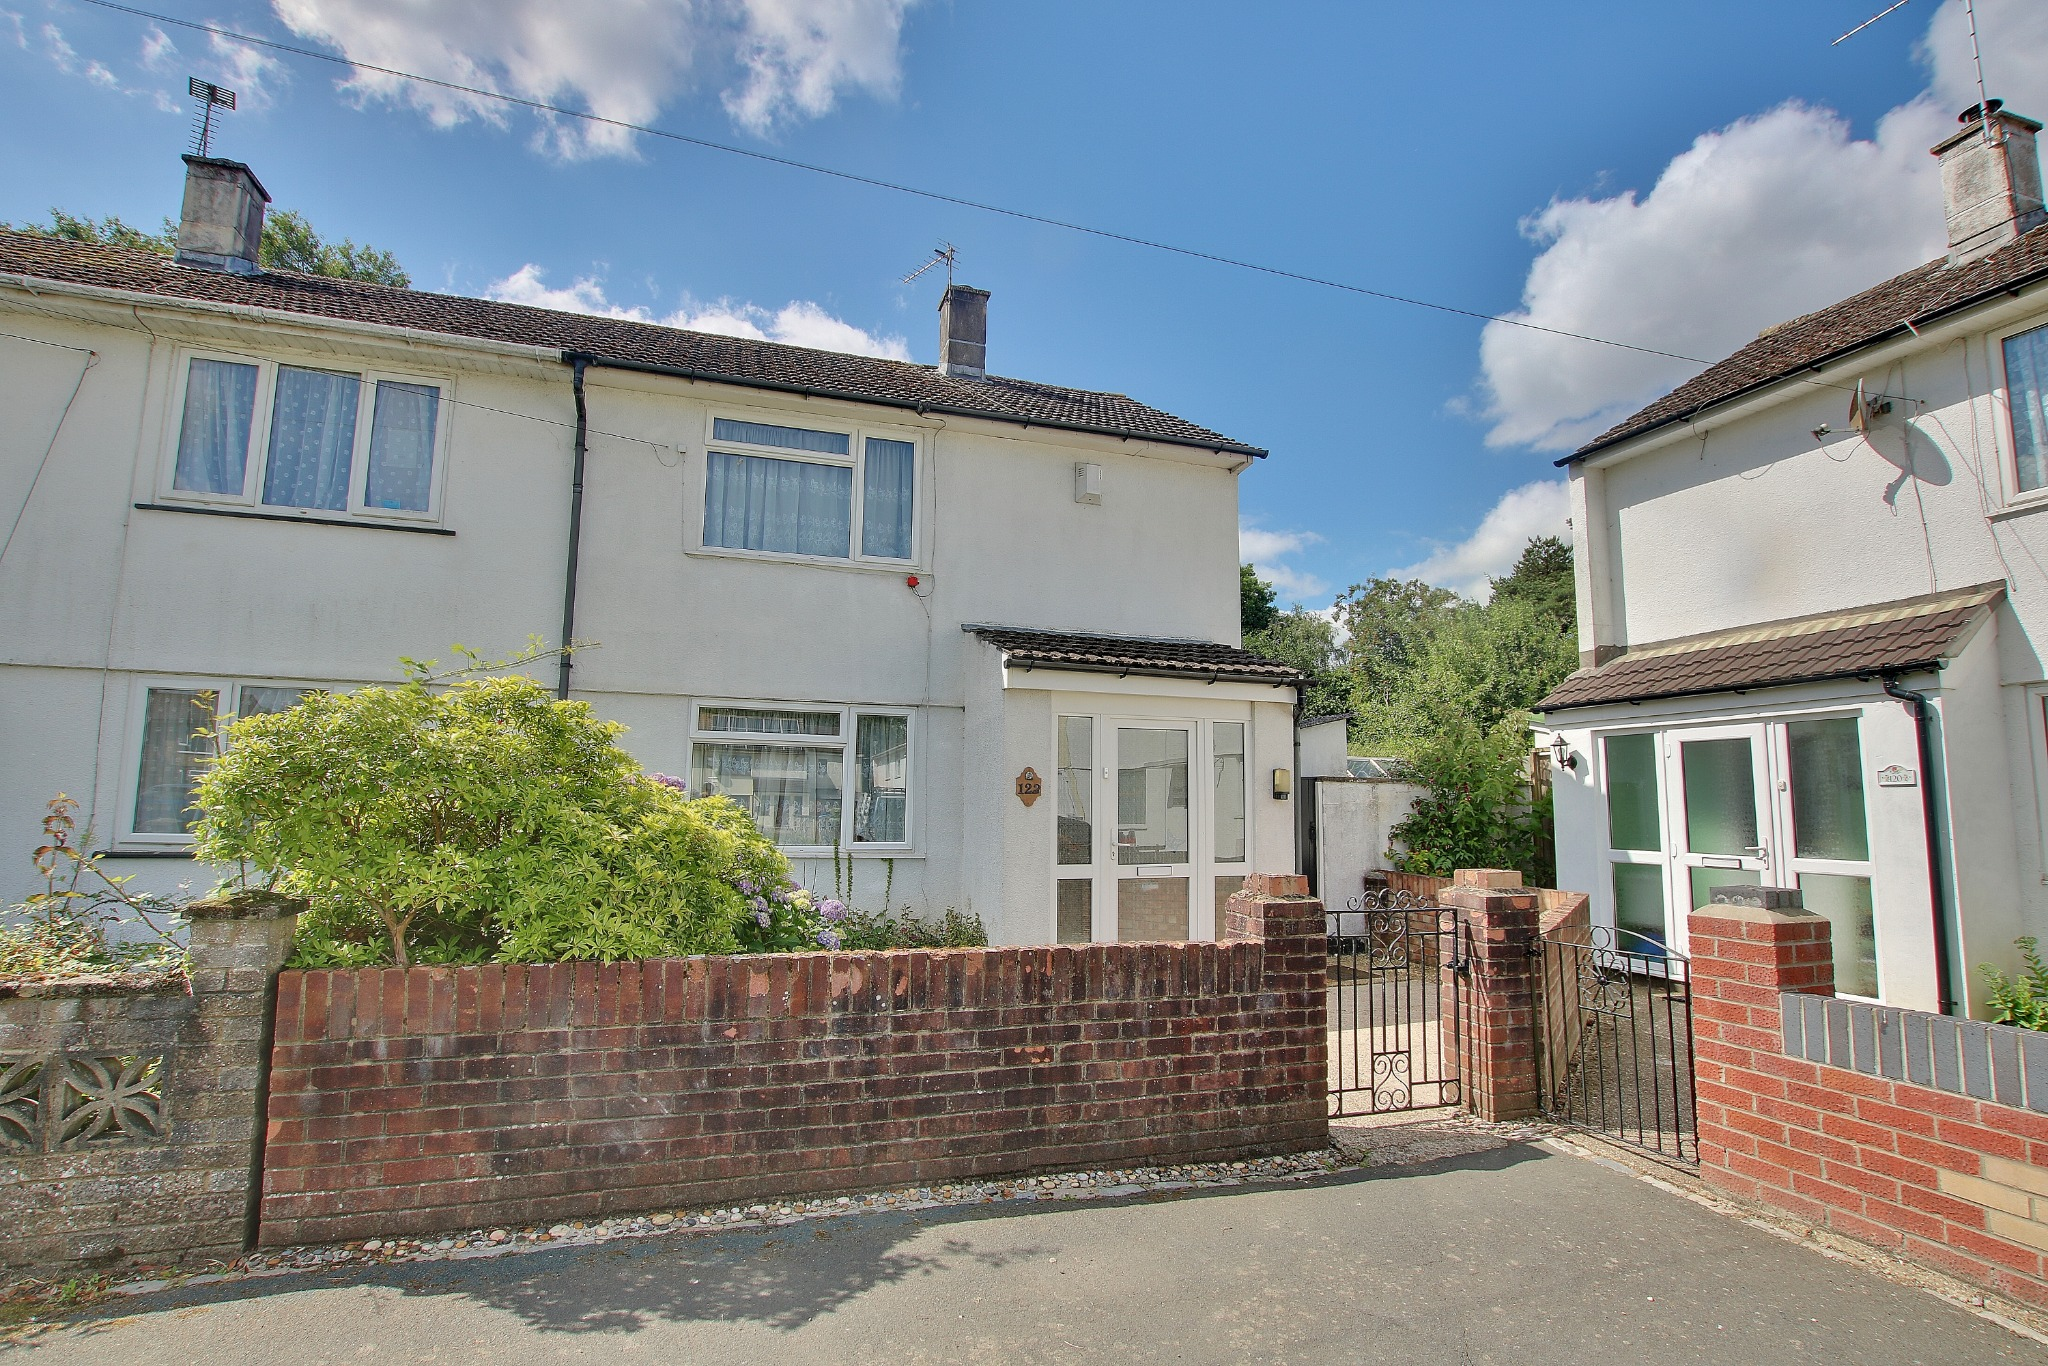 SEMI DETACHED HOUSE IN NEED OF SOME IMPROVEMENT WITH AN EXCEPTIONALLY LARGE REAR GARDEN